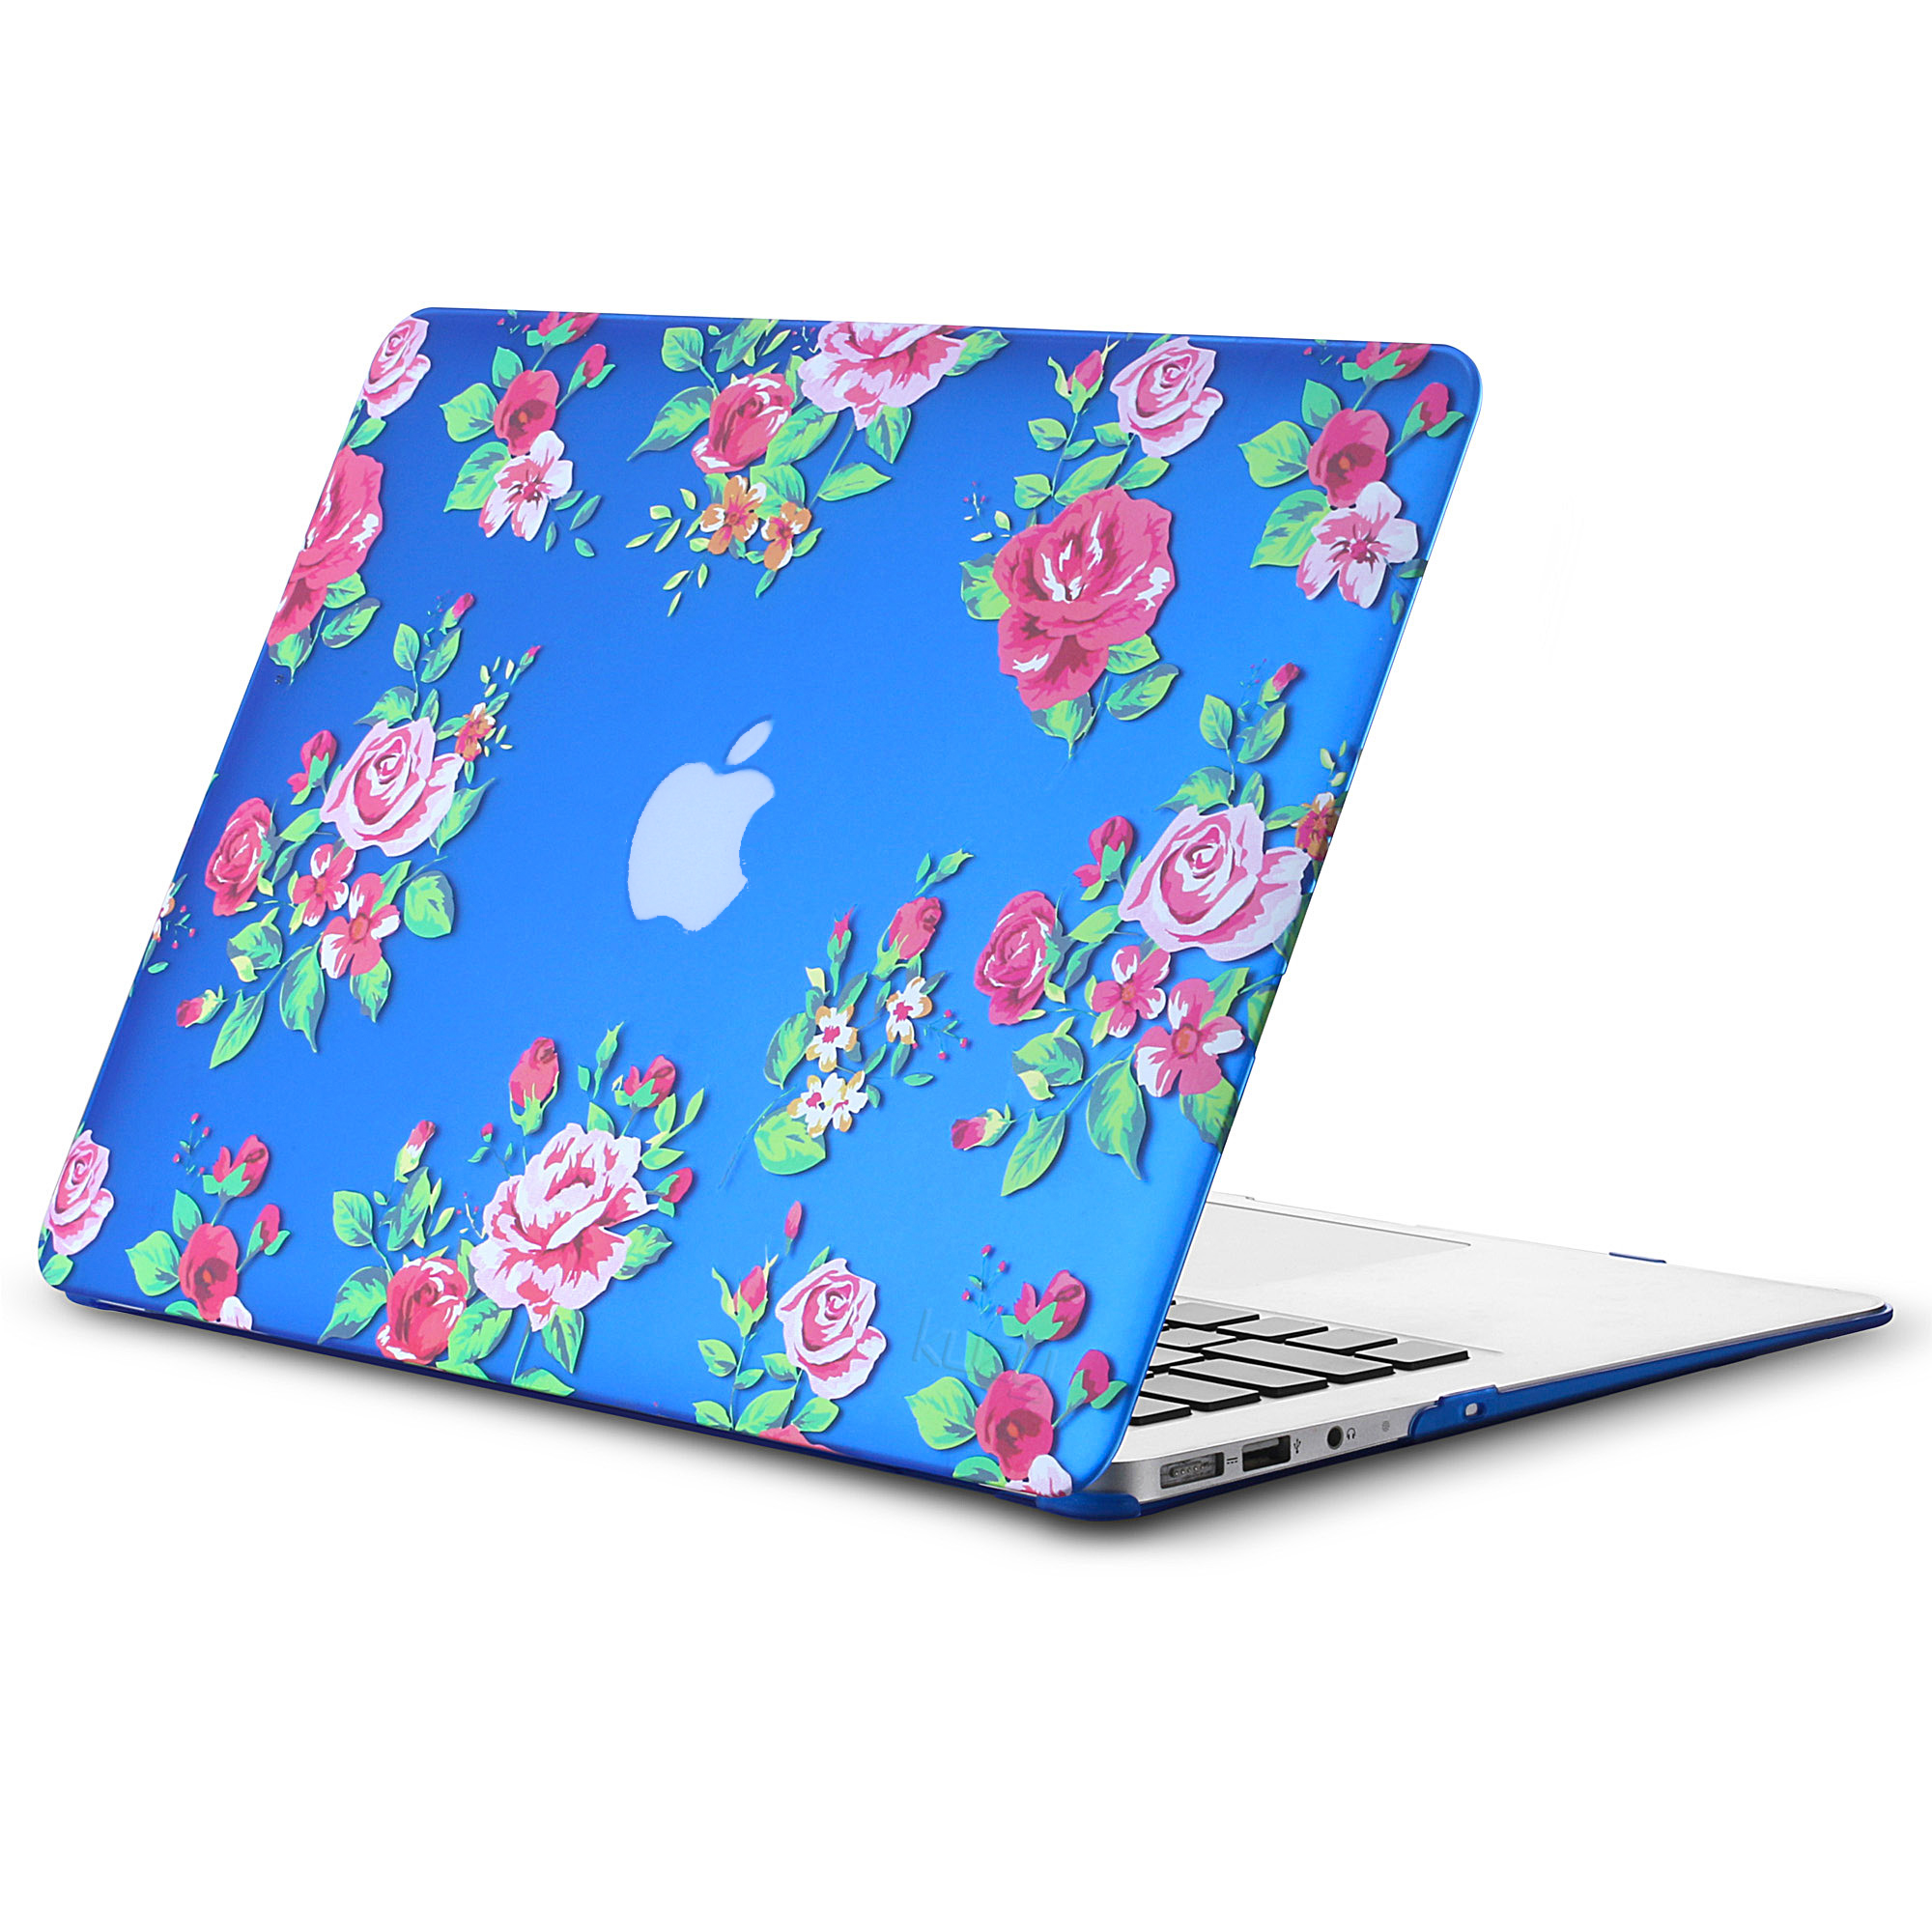 "Kuzy - AIR 13-inch Vintage Flowers Rubberized Hard Case for MacBook Air 13.3"" (A1466 & A1369) Shell Cover - Vintage Flower"